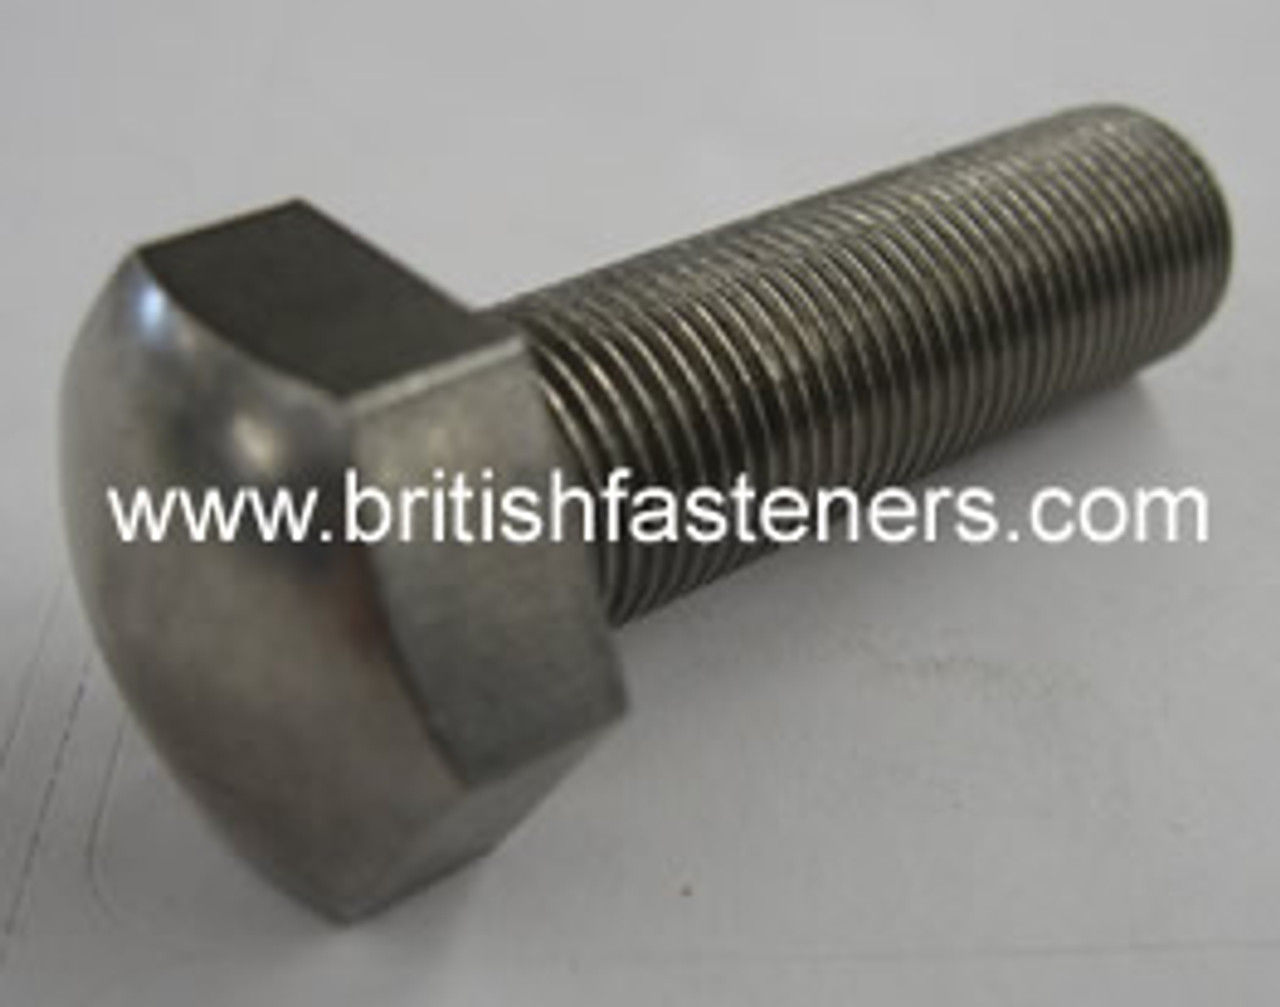 BSC Stainless BOLT DOMED 7/16 x 1 - (6790)